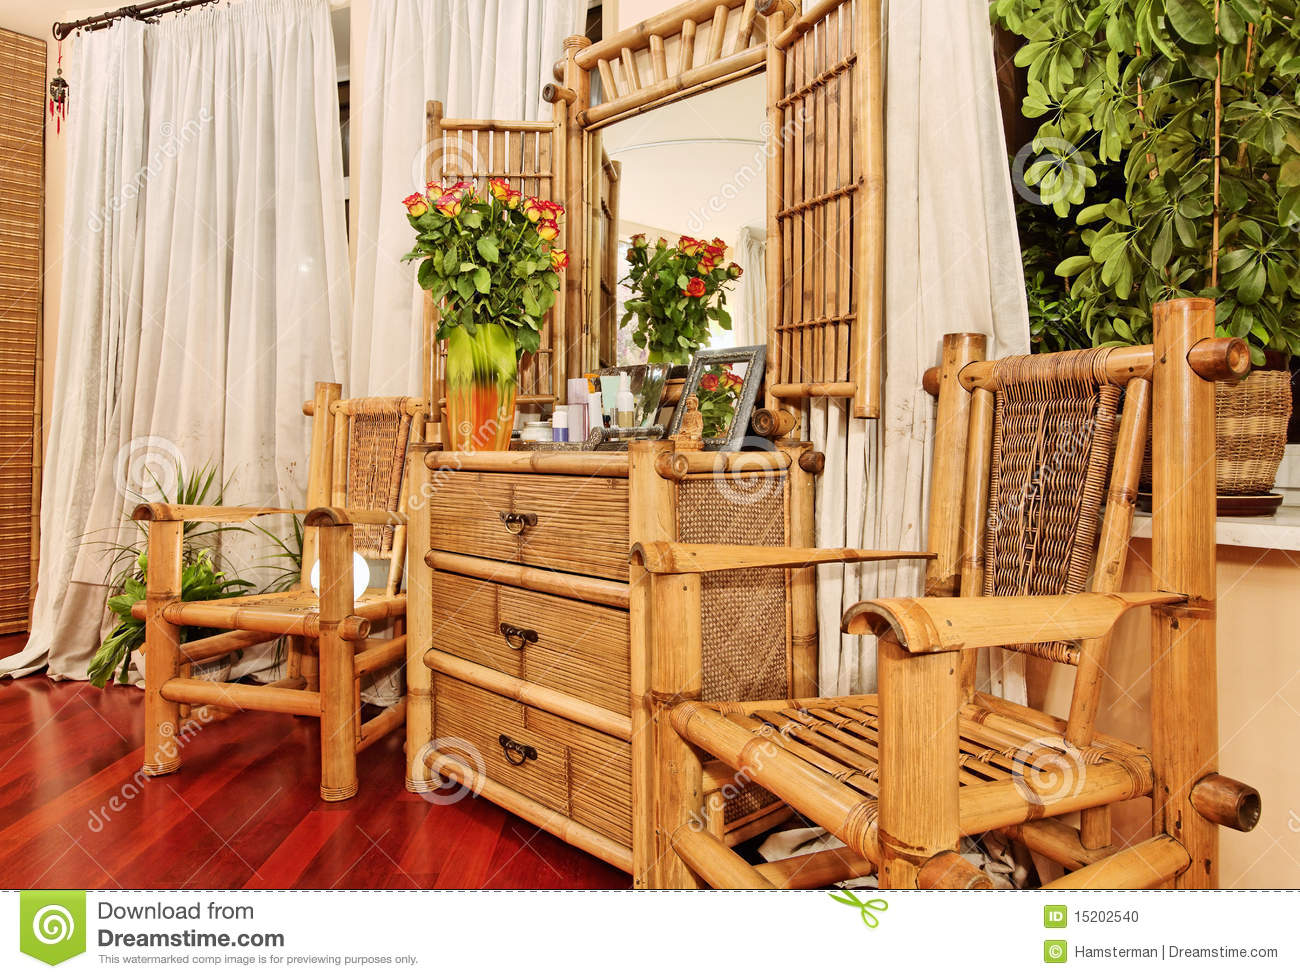 Ethnic bamboo furniture stock photo image of chest flower 15202540 - Mobili in bambu ...